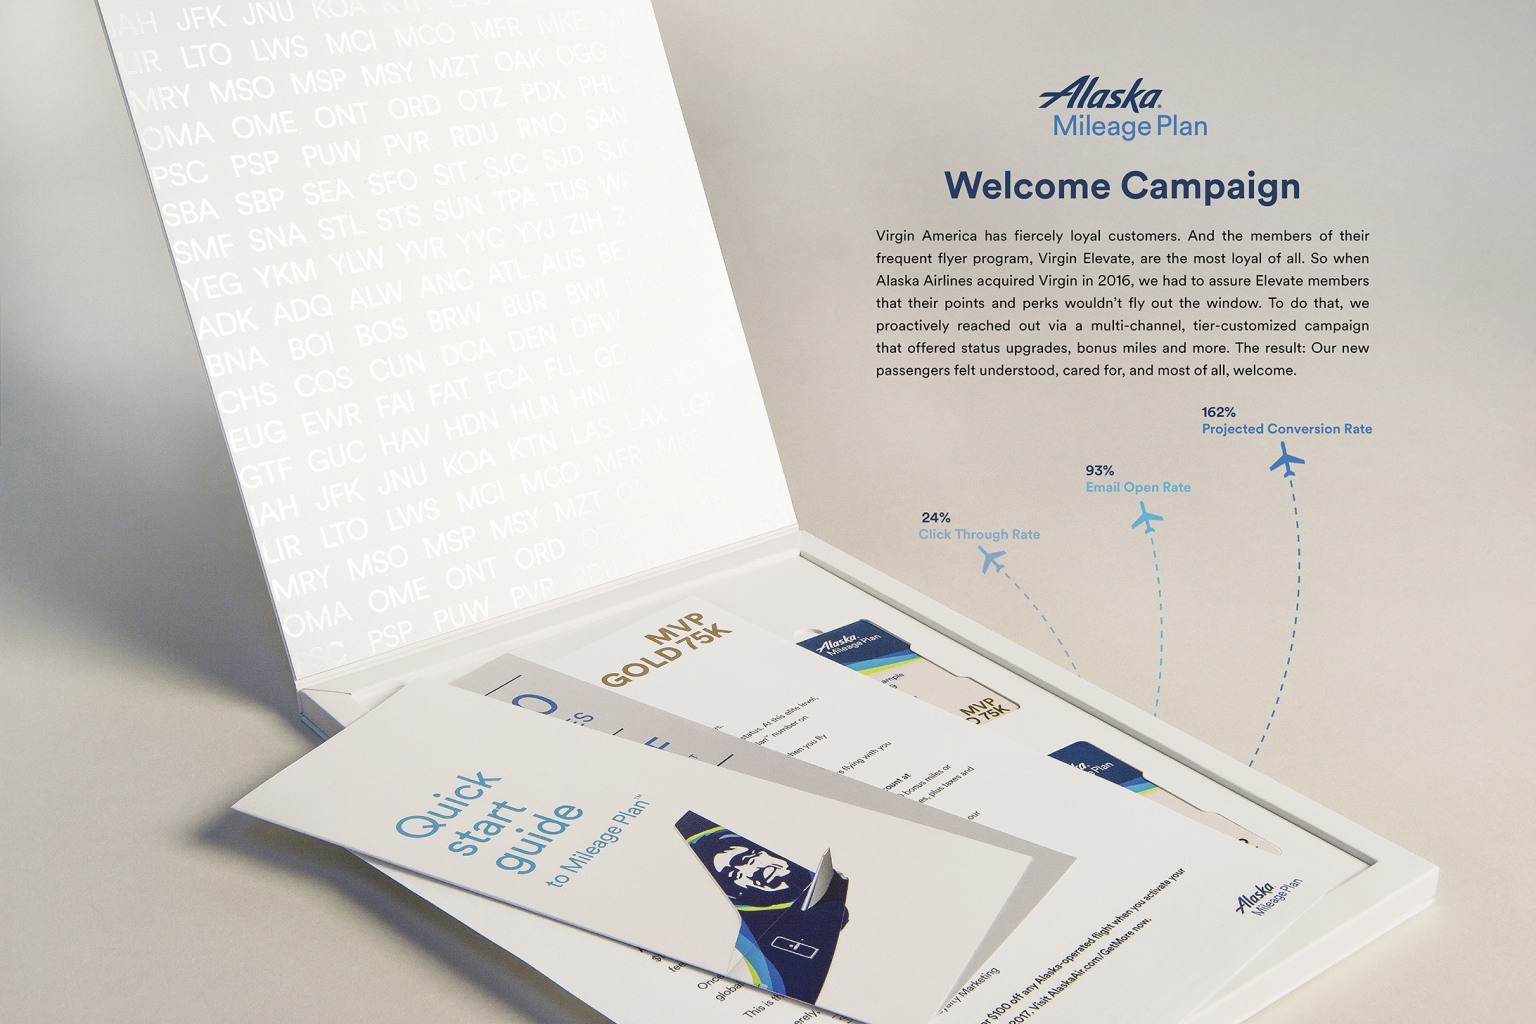 Alaska Airlines - Welcome Campaign